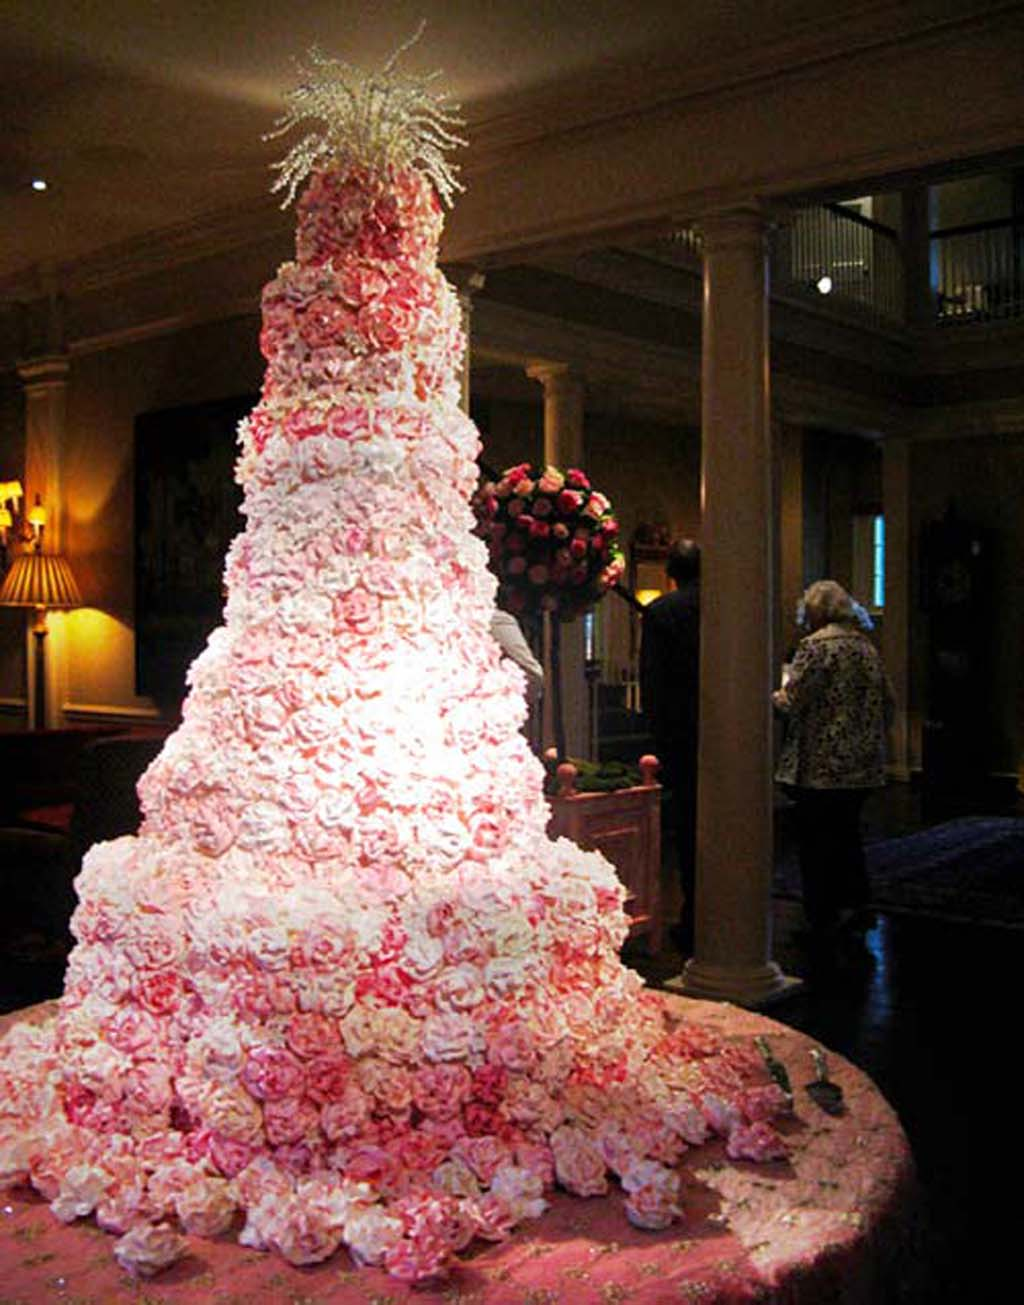 Best Wedding Cakes Ever Wallpaper 4